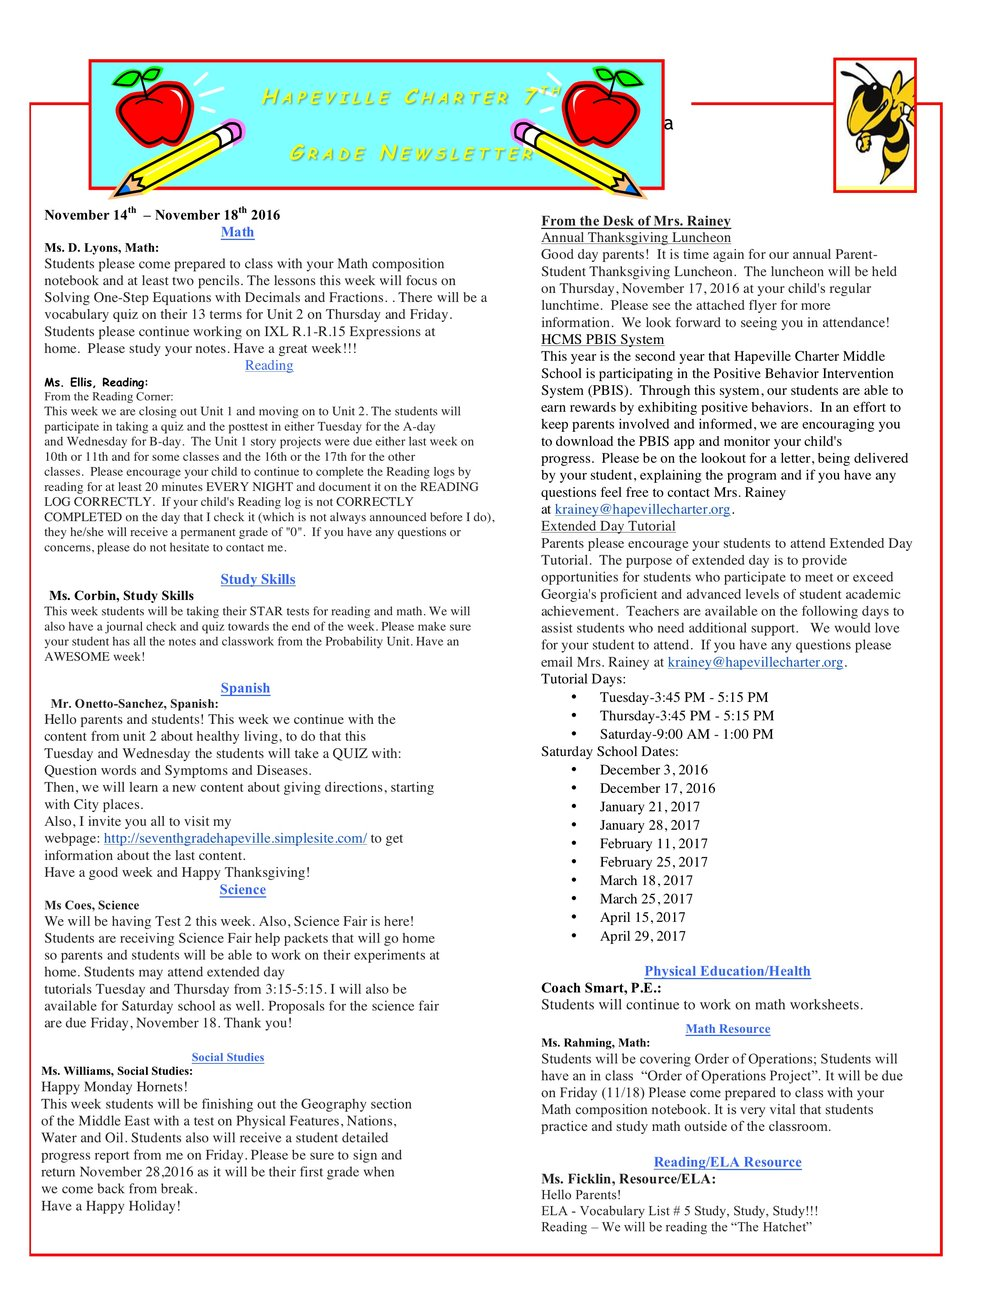 Newsletter Image7th Grade Newsletter 11.14.2016 .jpeg